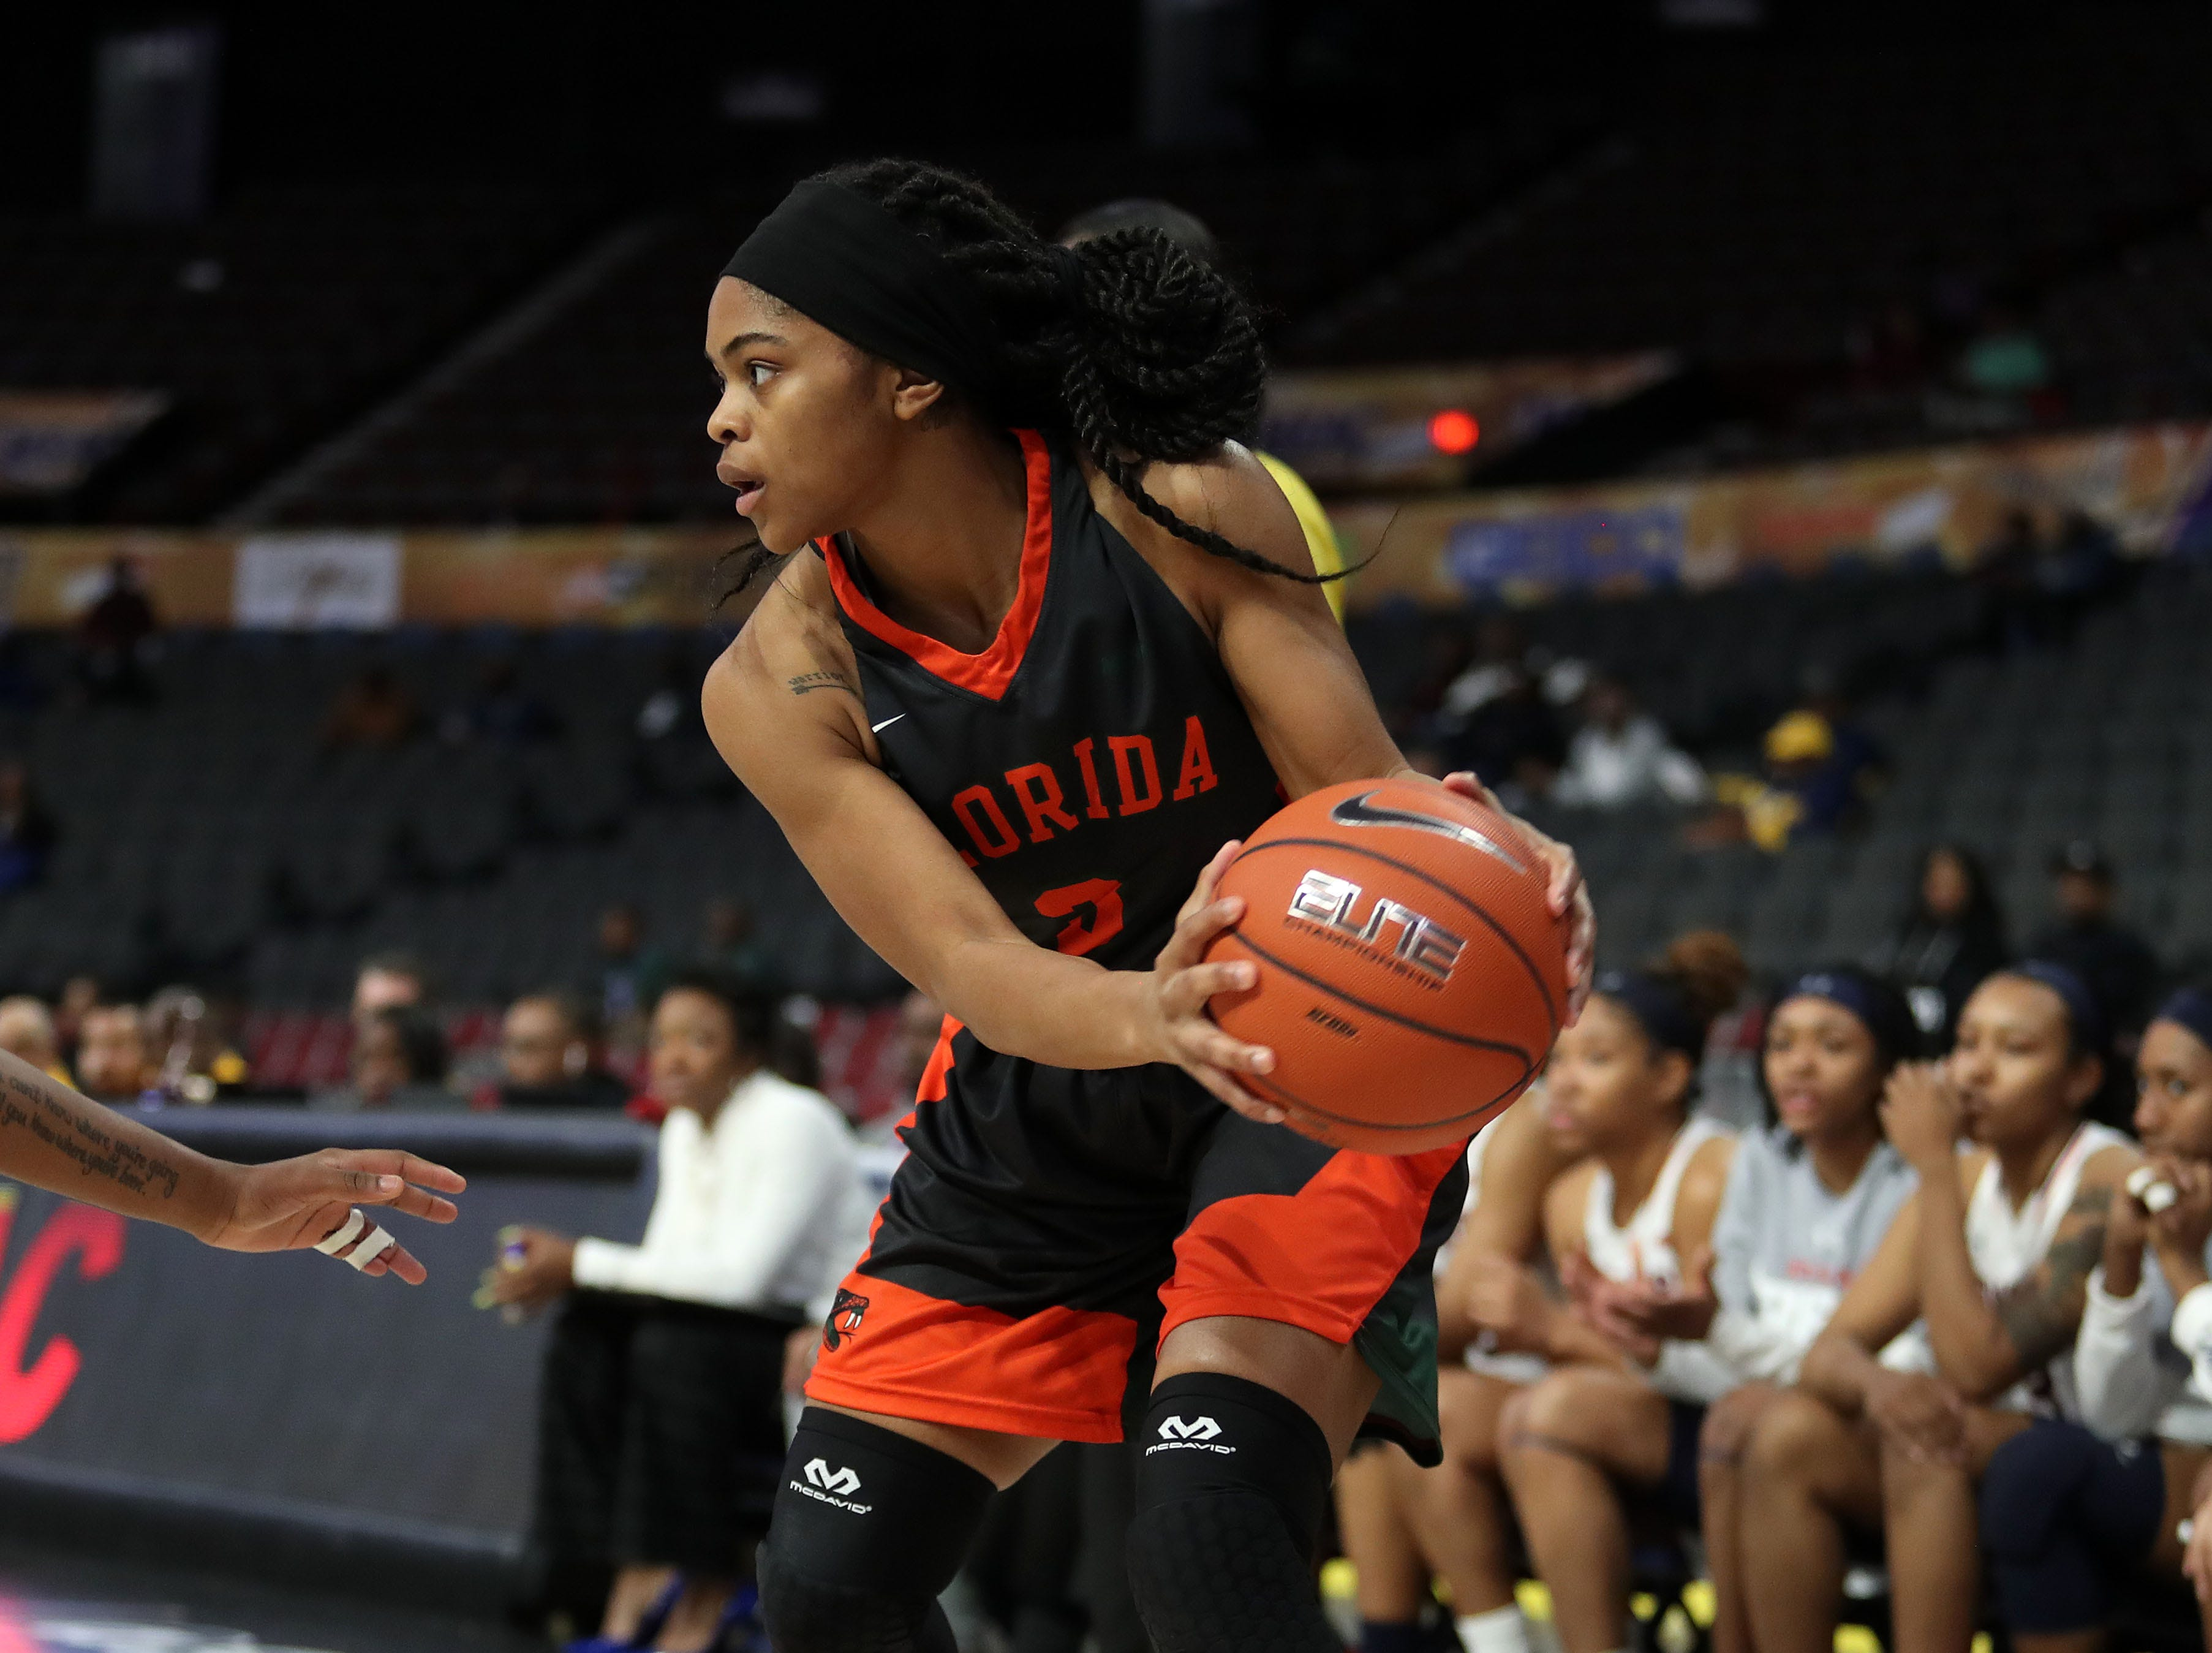 FAMU guard Candice Williams spots up versus Howard in the first round of the MEAC tournament on Monday, March 11, 2019.